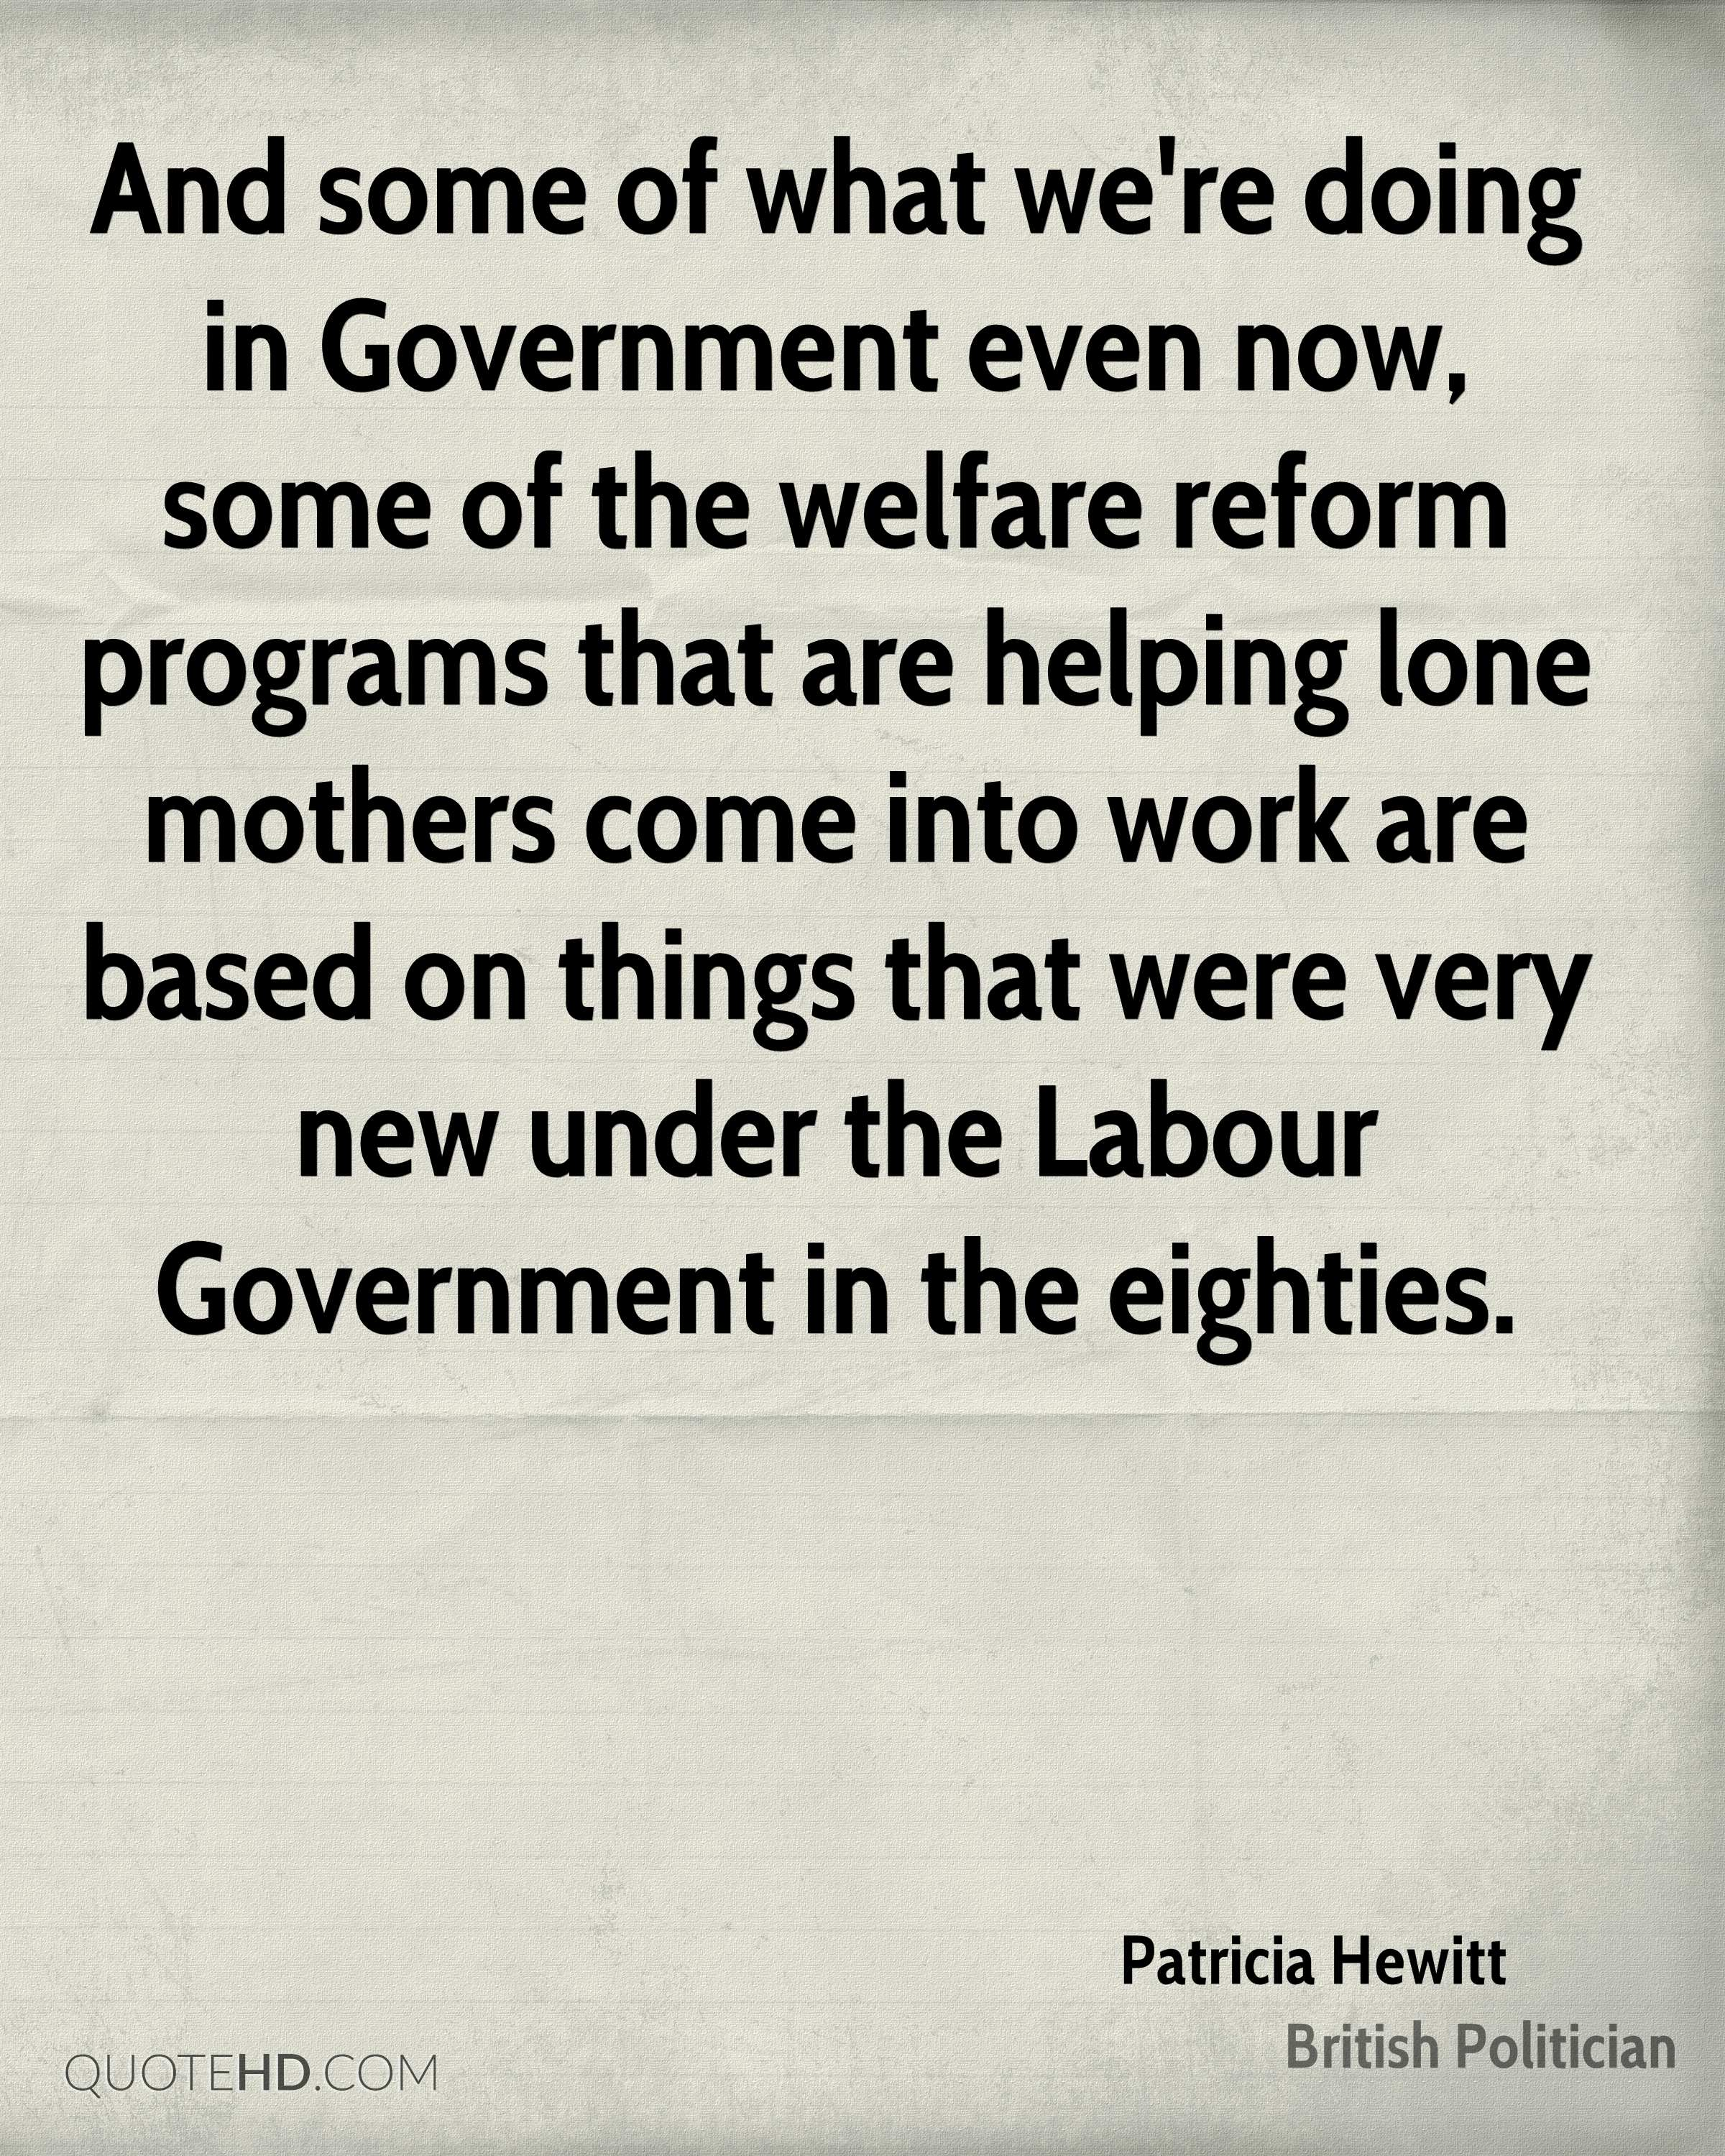 And some of what we're doing in Government even now, some of the welfare reform programs that are helping lone mothers come into work are based on things that were very new under the Labour Government in the eighties.